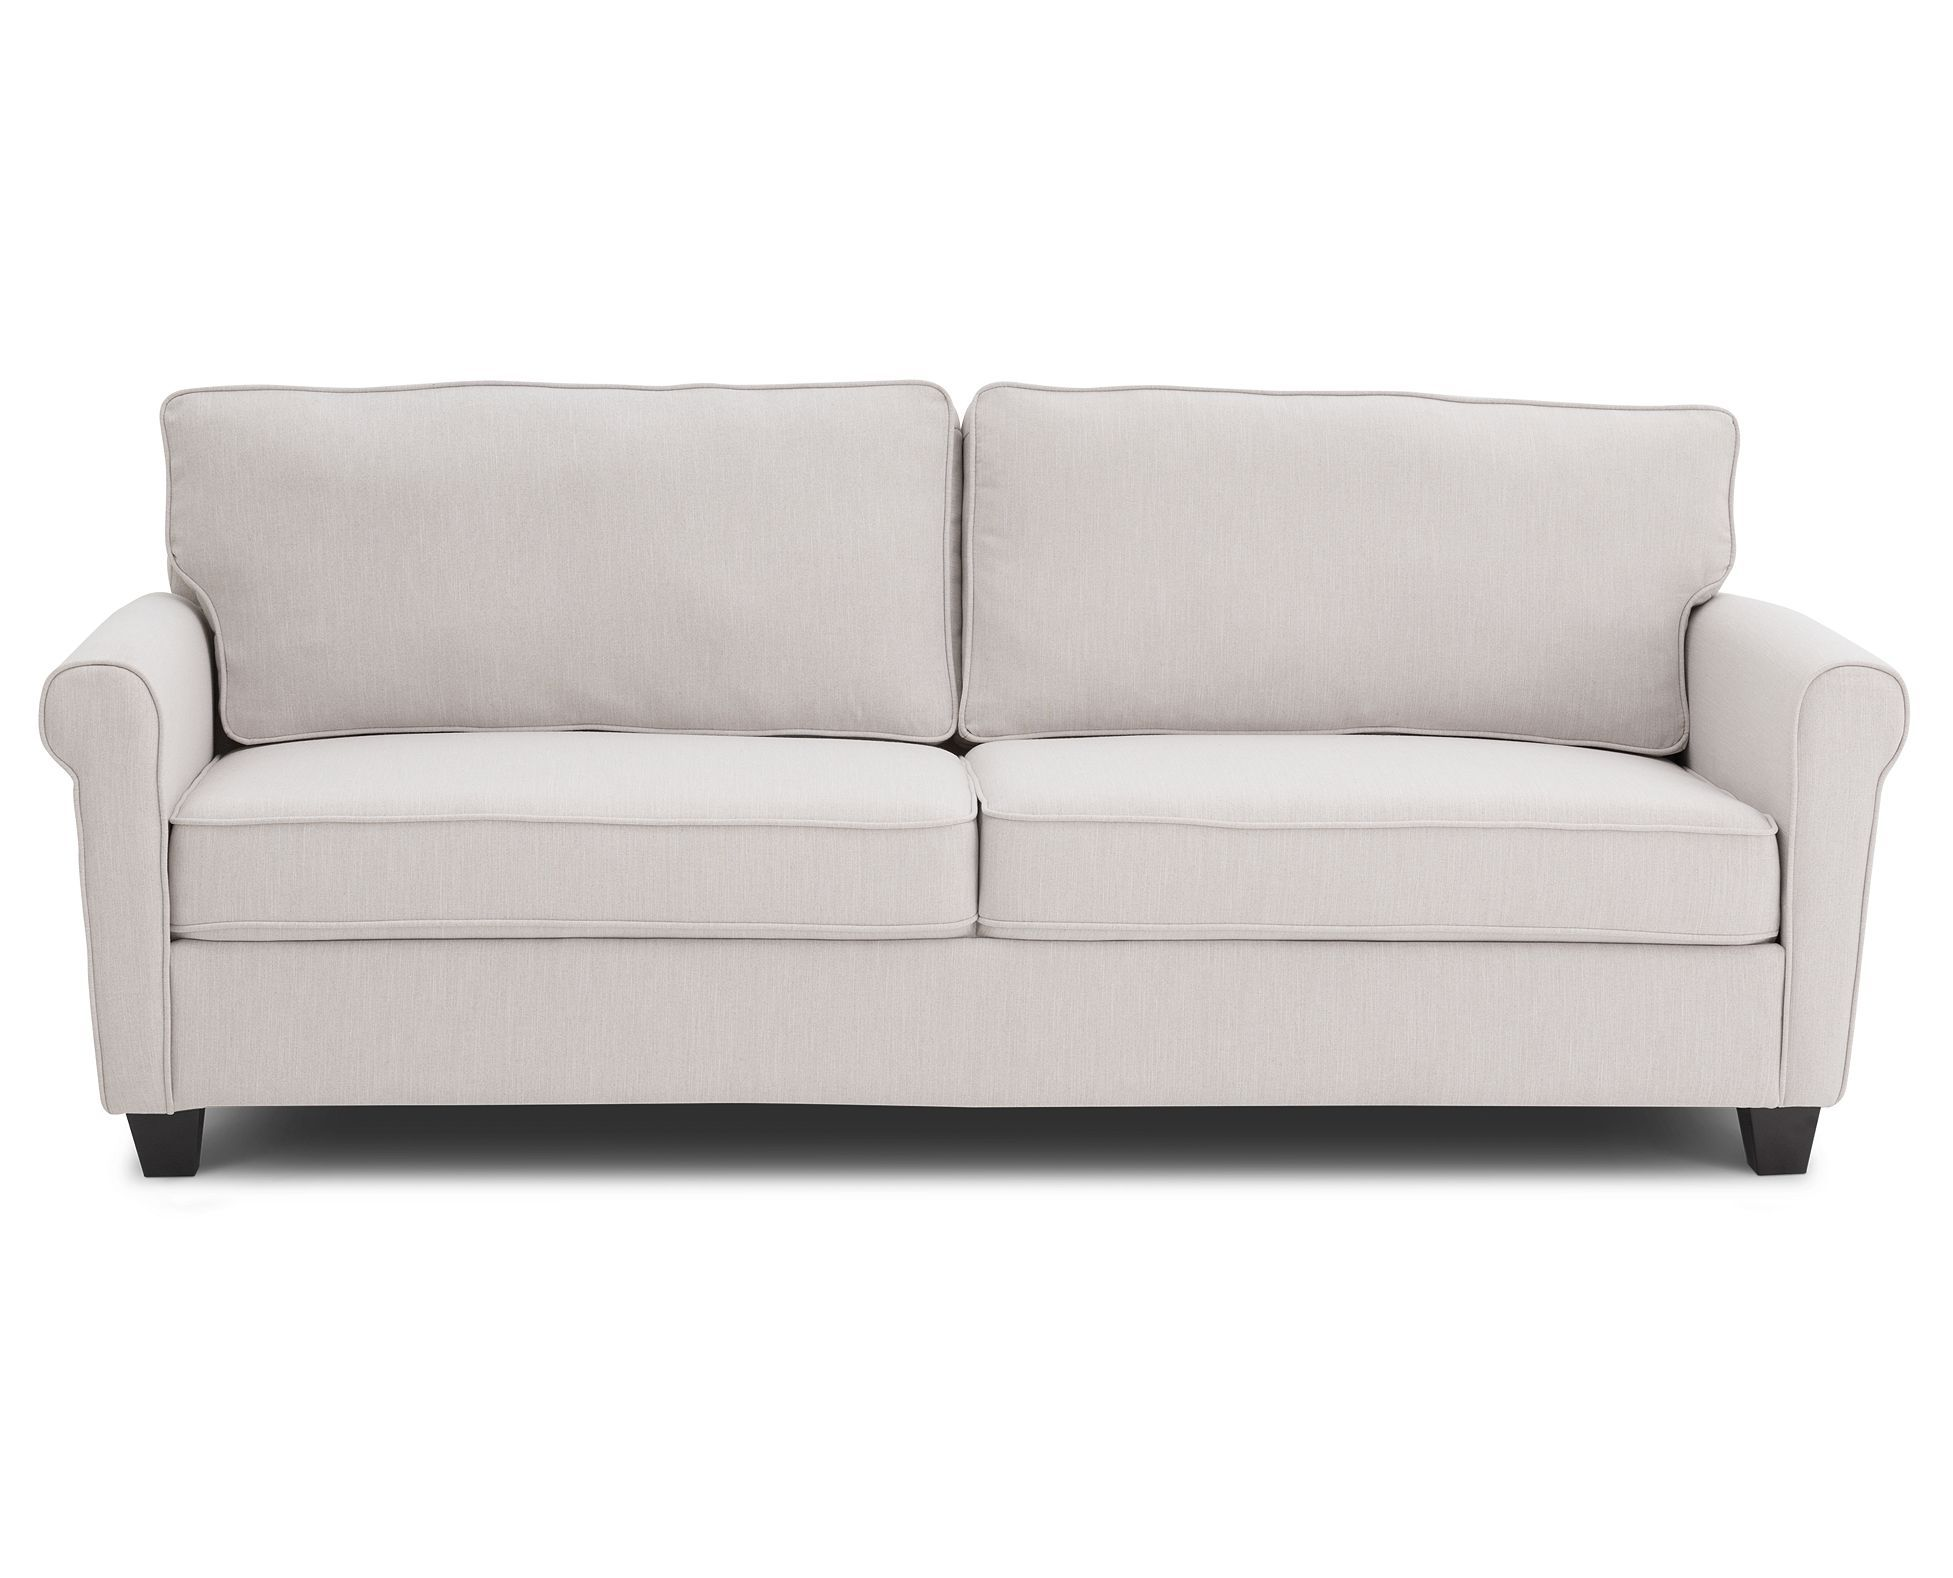 The Zamora Sofa Is Built To Give You